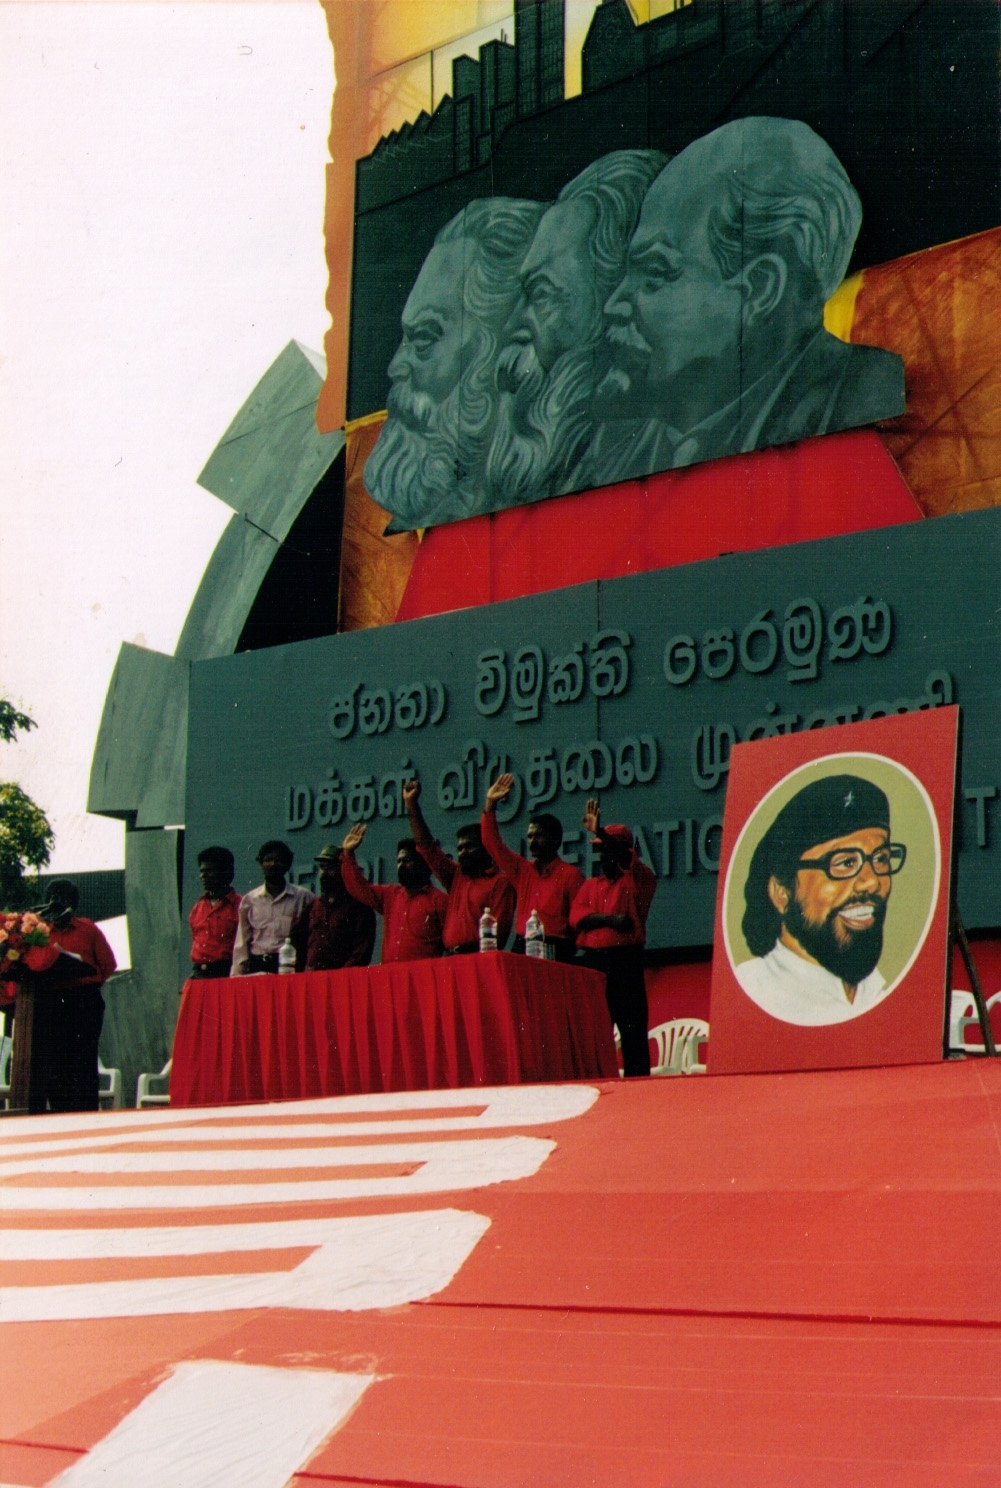 Janatha Vimukthi Peramuna - Wikipedia intended for 18 August 1987 In Sri Lanka